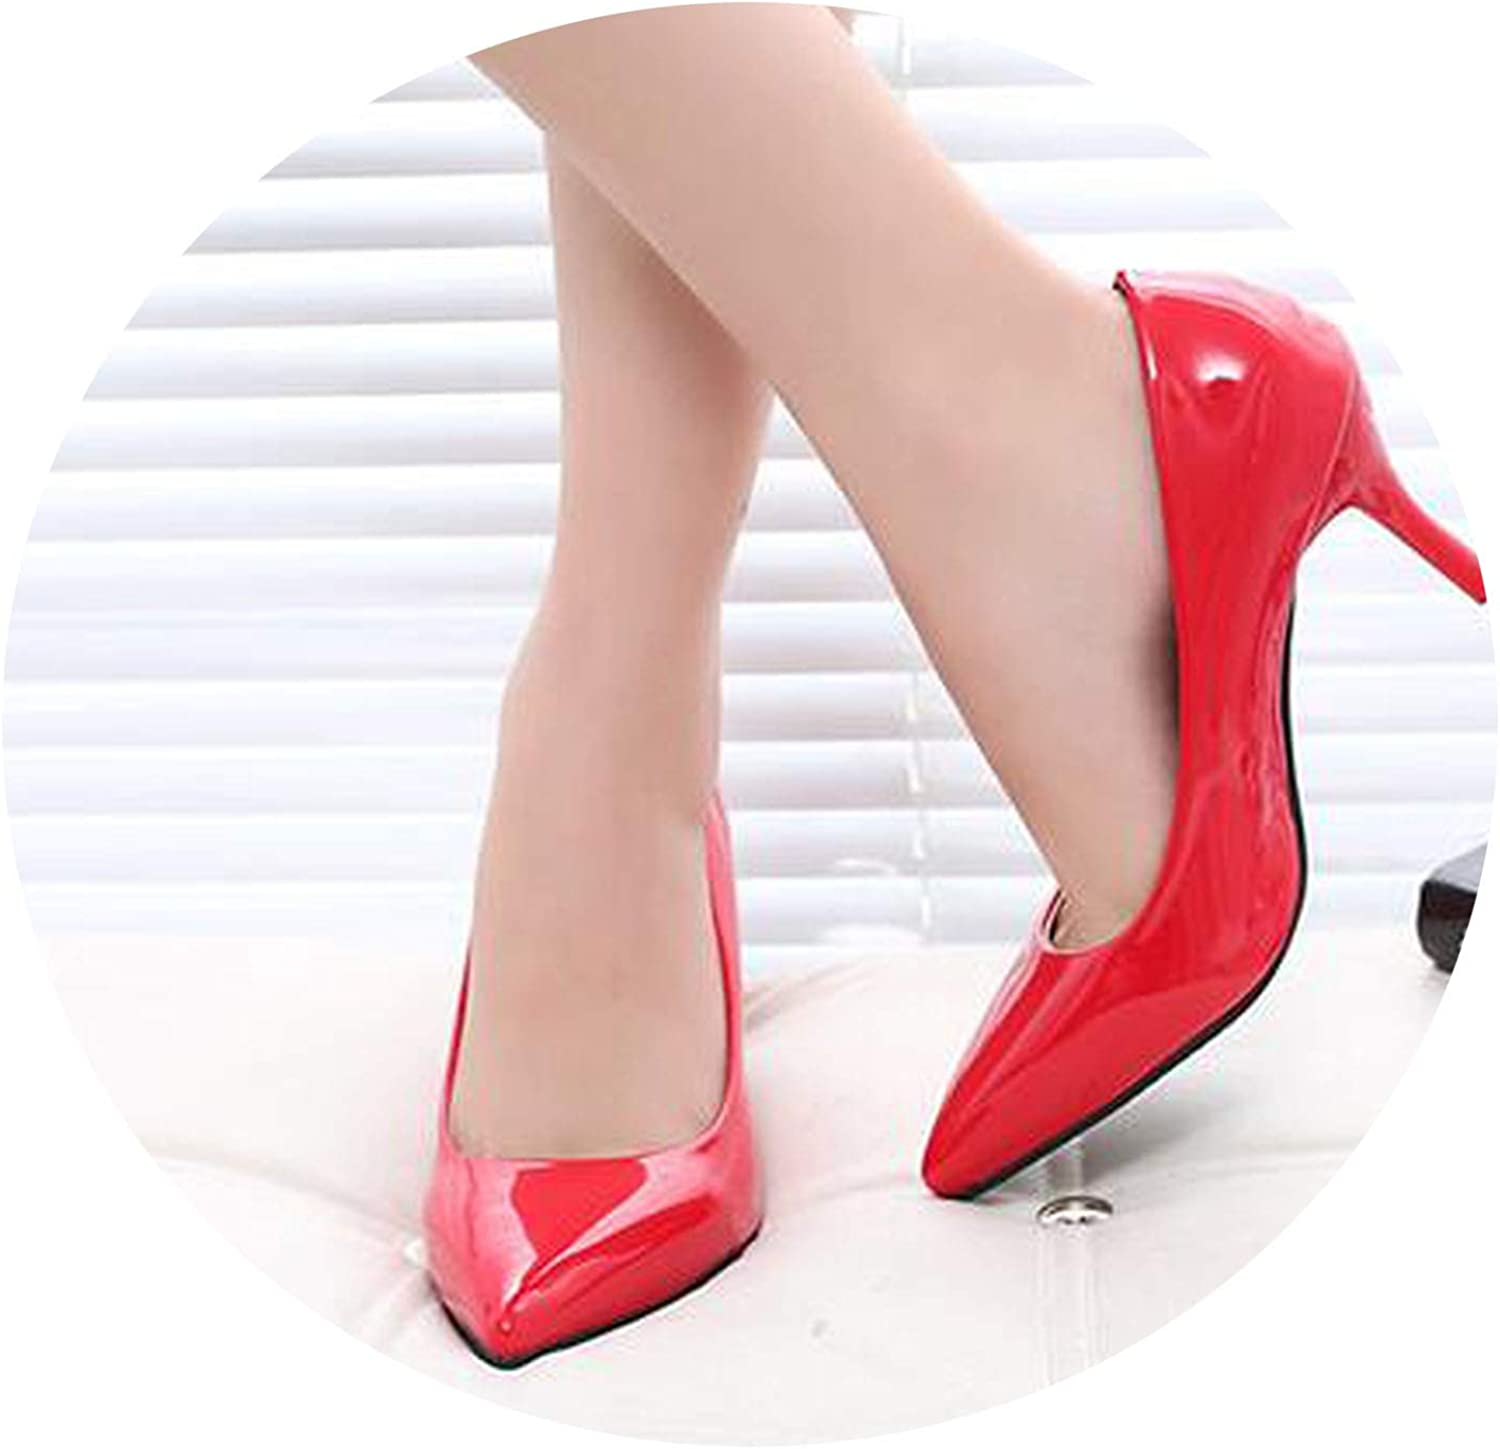 Awesome-experience New Thin Sexy Fashion Metal High Heels Mirror Patent Leather Pointed Women Single shoes